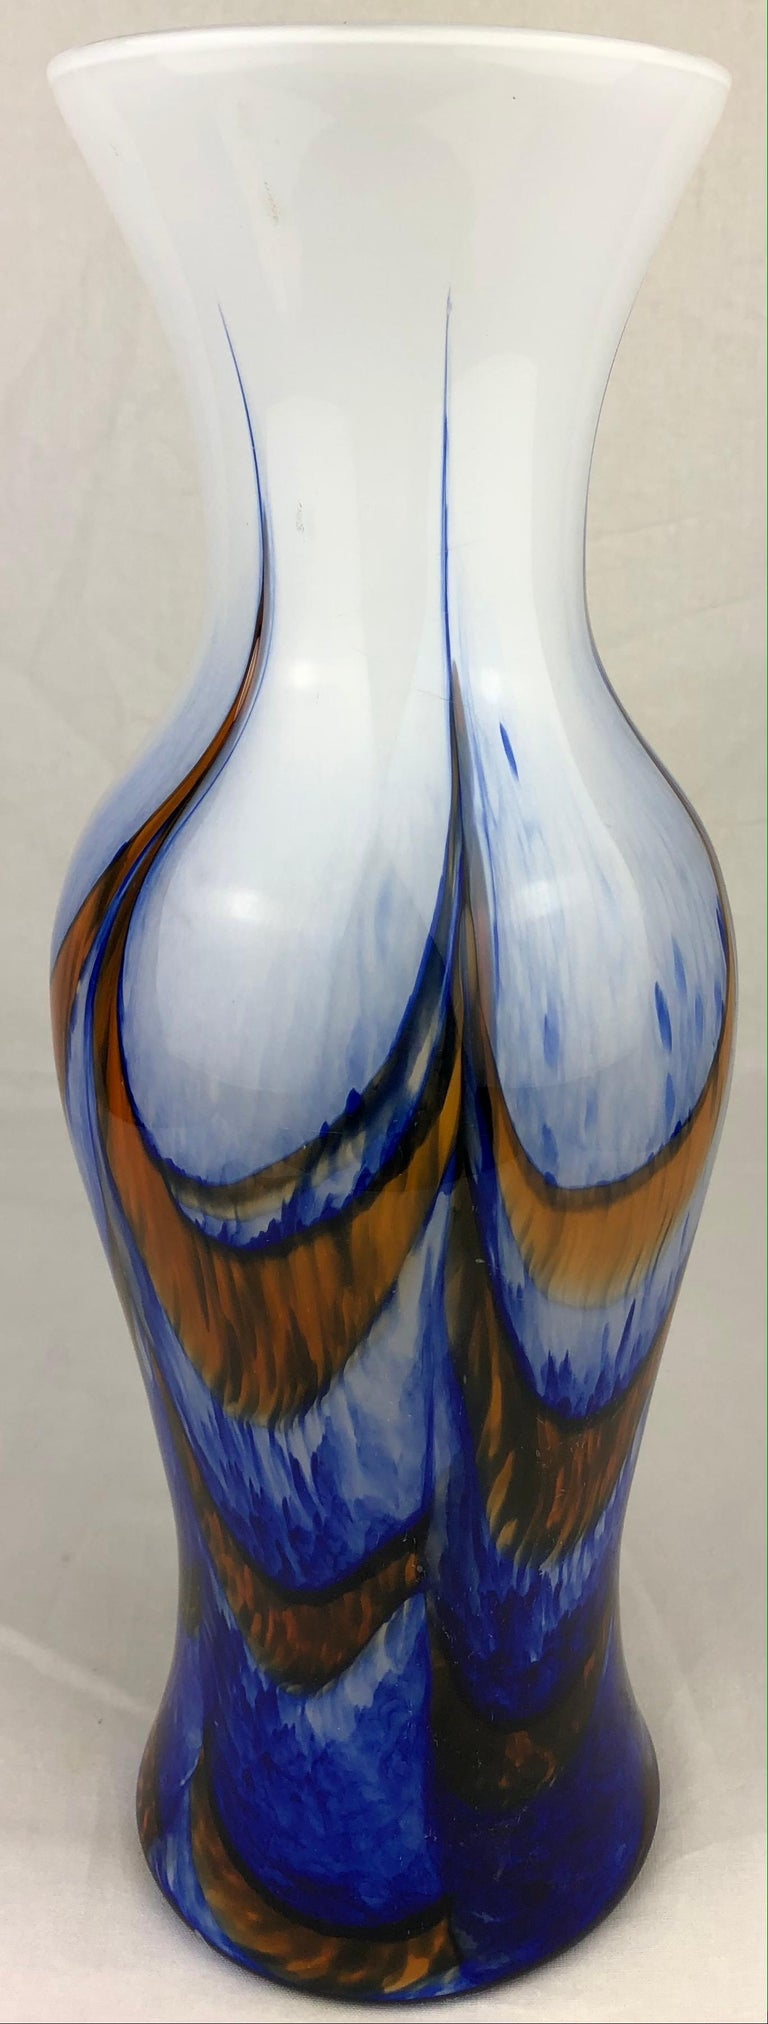 Tall French Midcentury Art Glass Vase Attributed to Schneider Glassworks For Sale 2